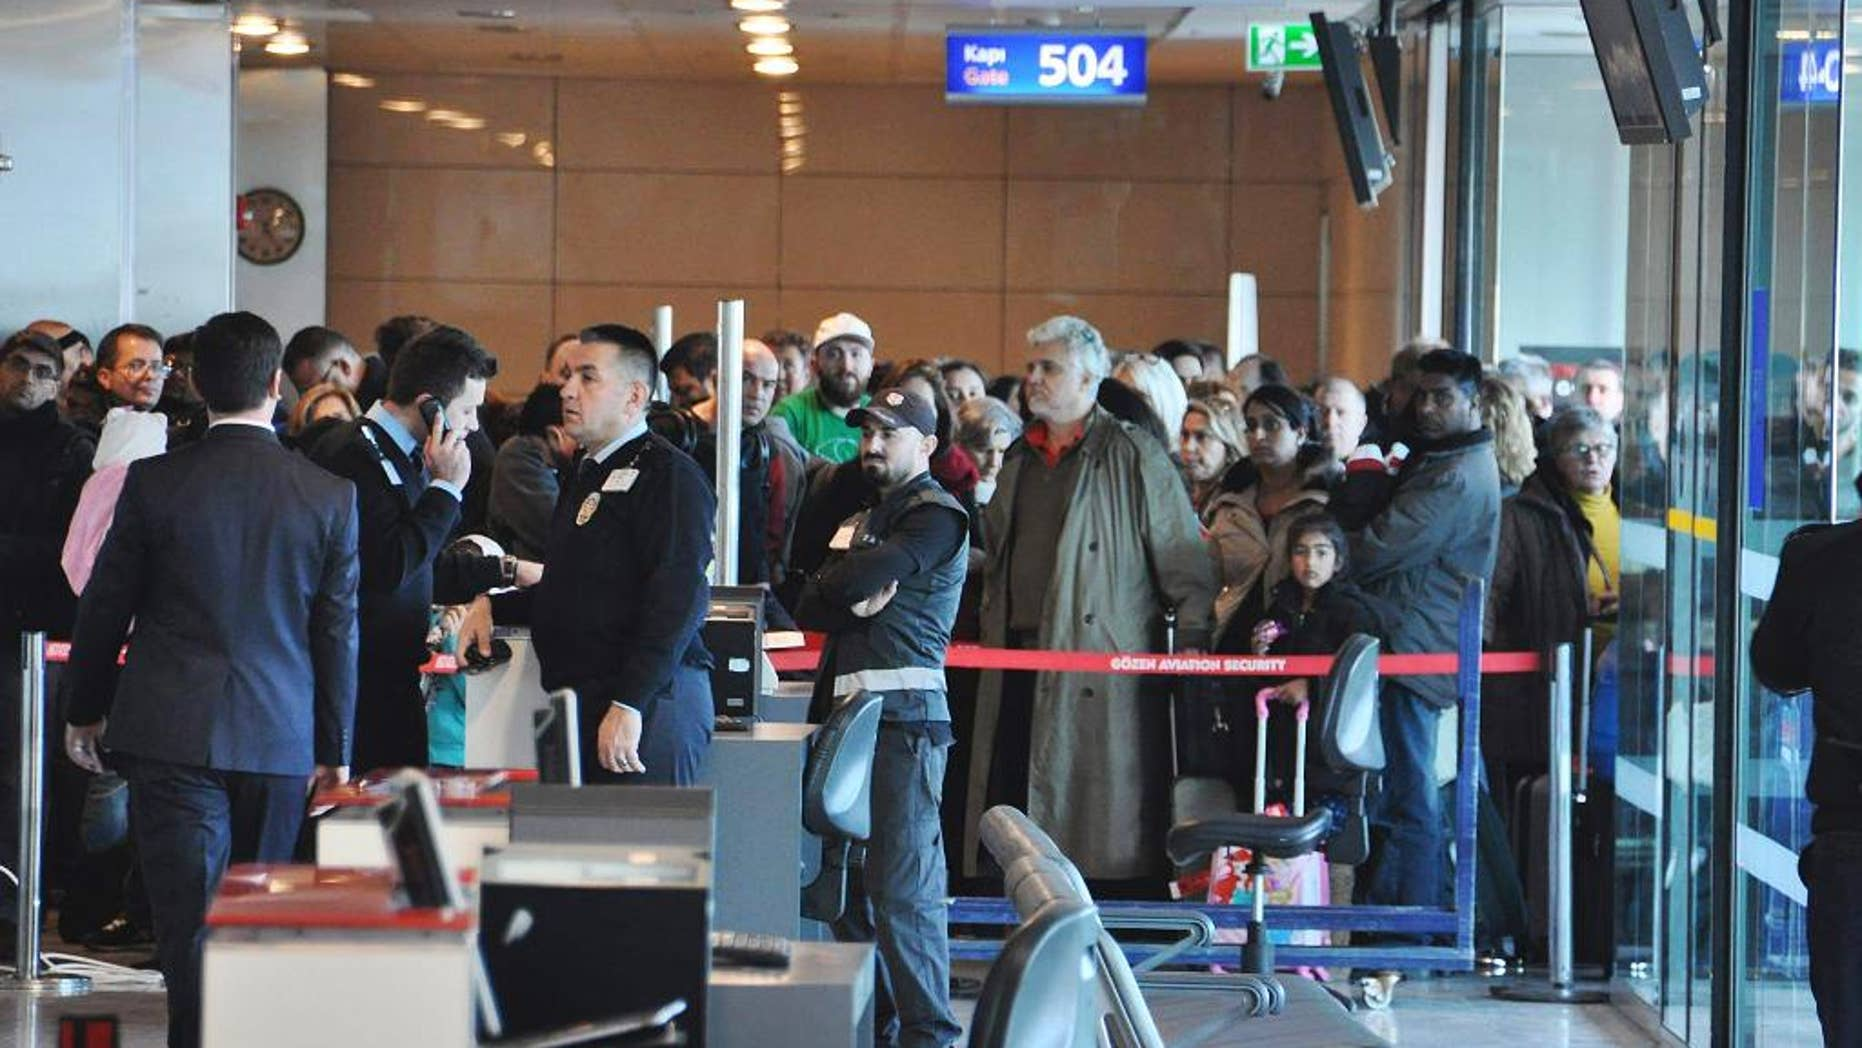 """Passengers of a Turkish Airlines flight to Toronto, Canada, wait at the boarding gate in Istanbul's Ataturk international airport, Saturday, Feb. 18, 2017. A Turkish Airlines plane in Istanbul was evacuated Saturday after a suspicious note was discovered in one of its bathrooms. The Turkish Airlines cabin crew found the words """"BOMB TO TORONTO"""" on the bathroom's wall on Flight TK-17 during its pushback from the gate, a Turkish Airlines press official told The Associated Press. (DHA-Depo Photos via AP)"""